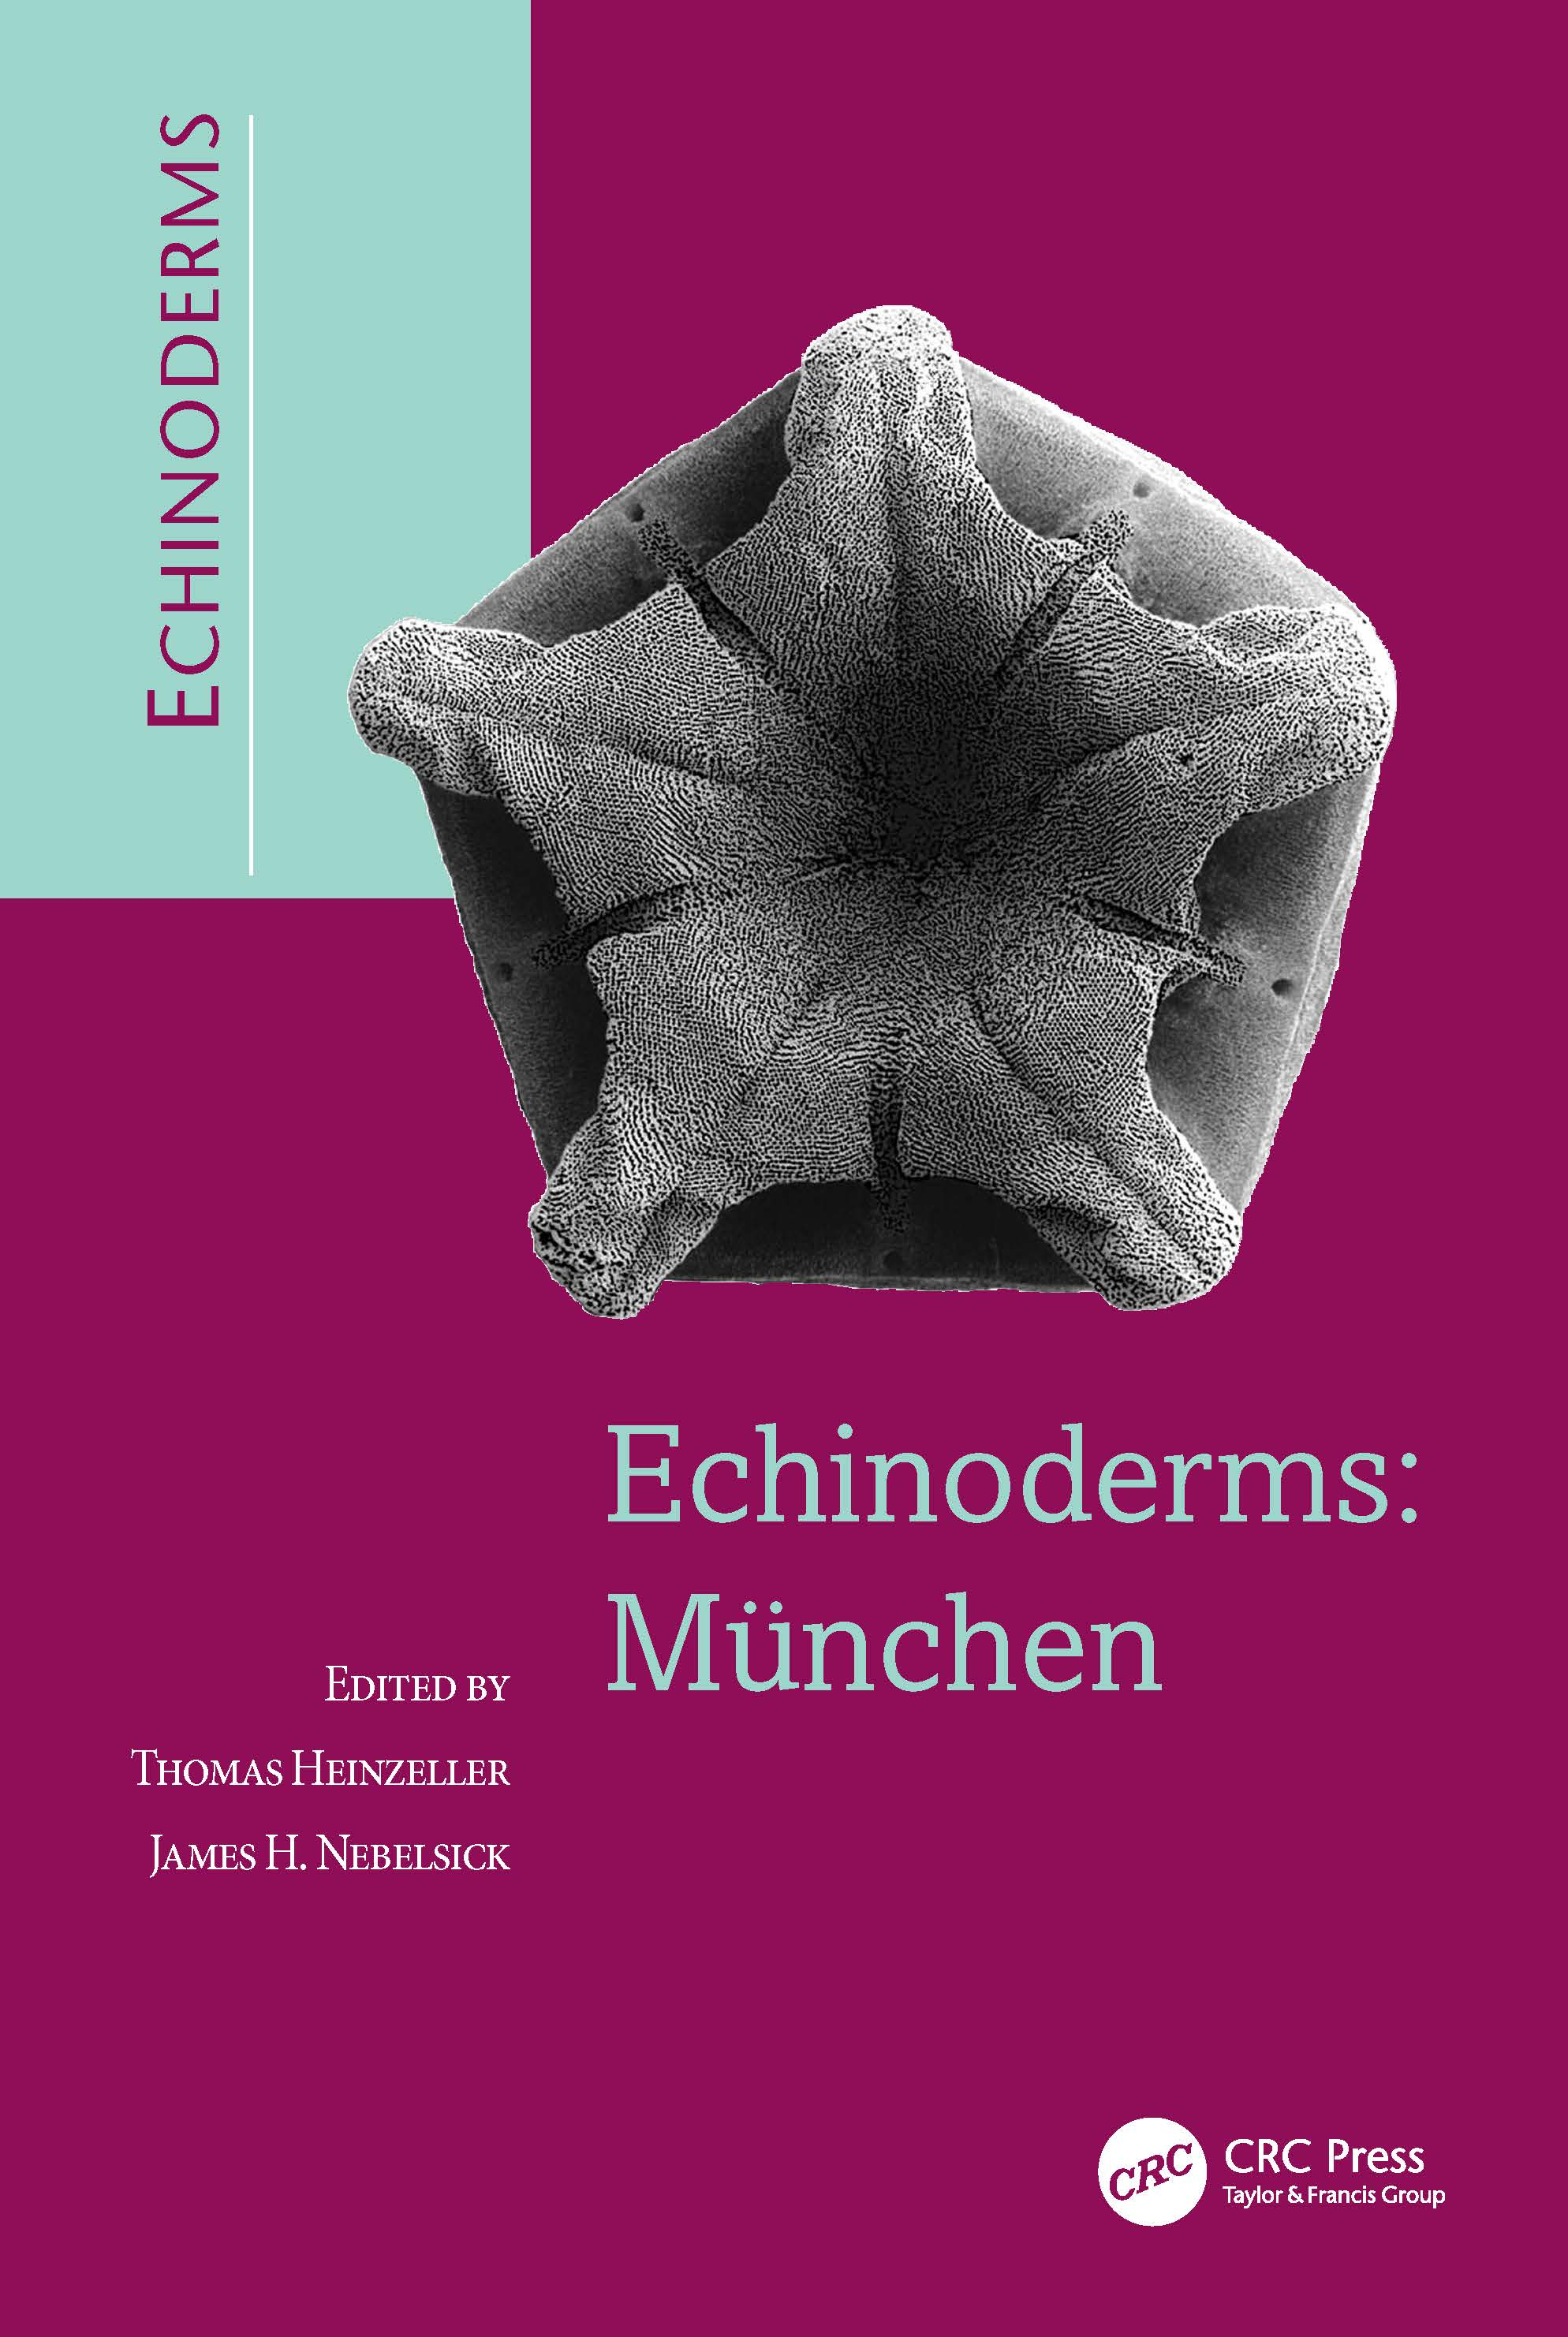 Echinoderms: Munchen: Proceedings of the 11th International Echinoderm Conference, 6-10 October 2003, Munich, Germany, 1st Edition (Hardback) book cover